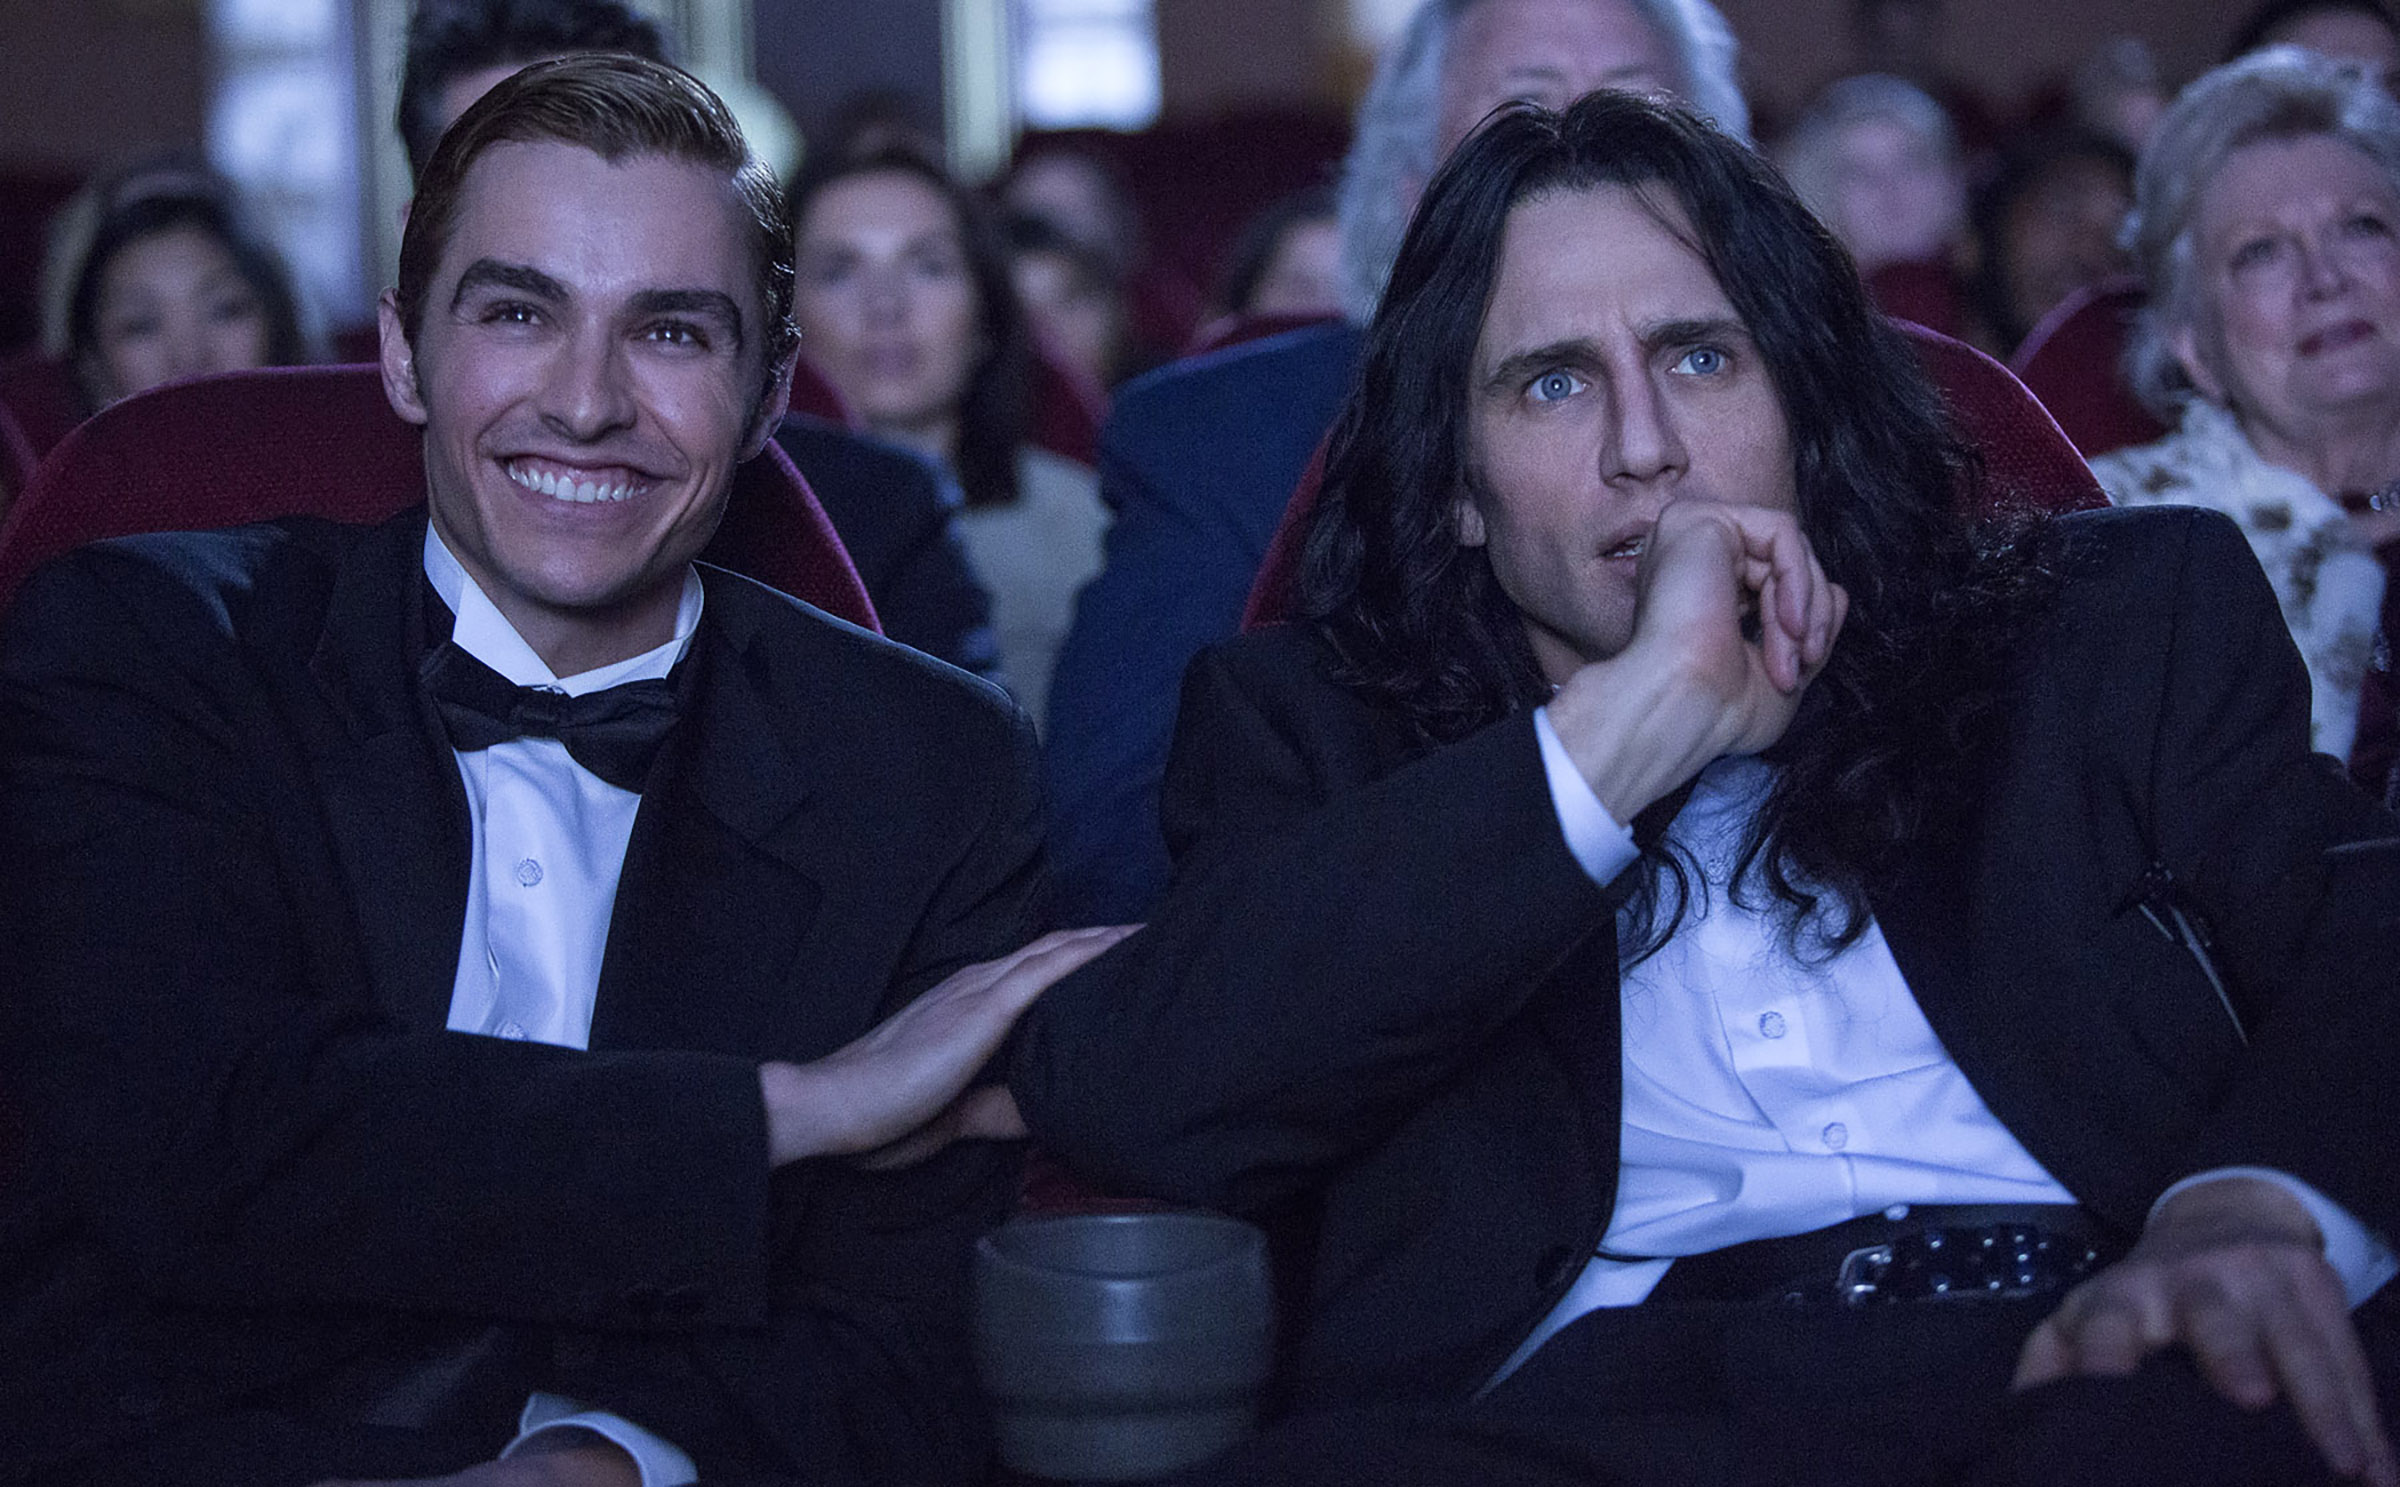 Dave Franco laughing in a movie theater with James Franco in THE DISASTER ARTIST.